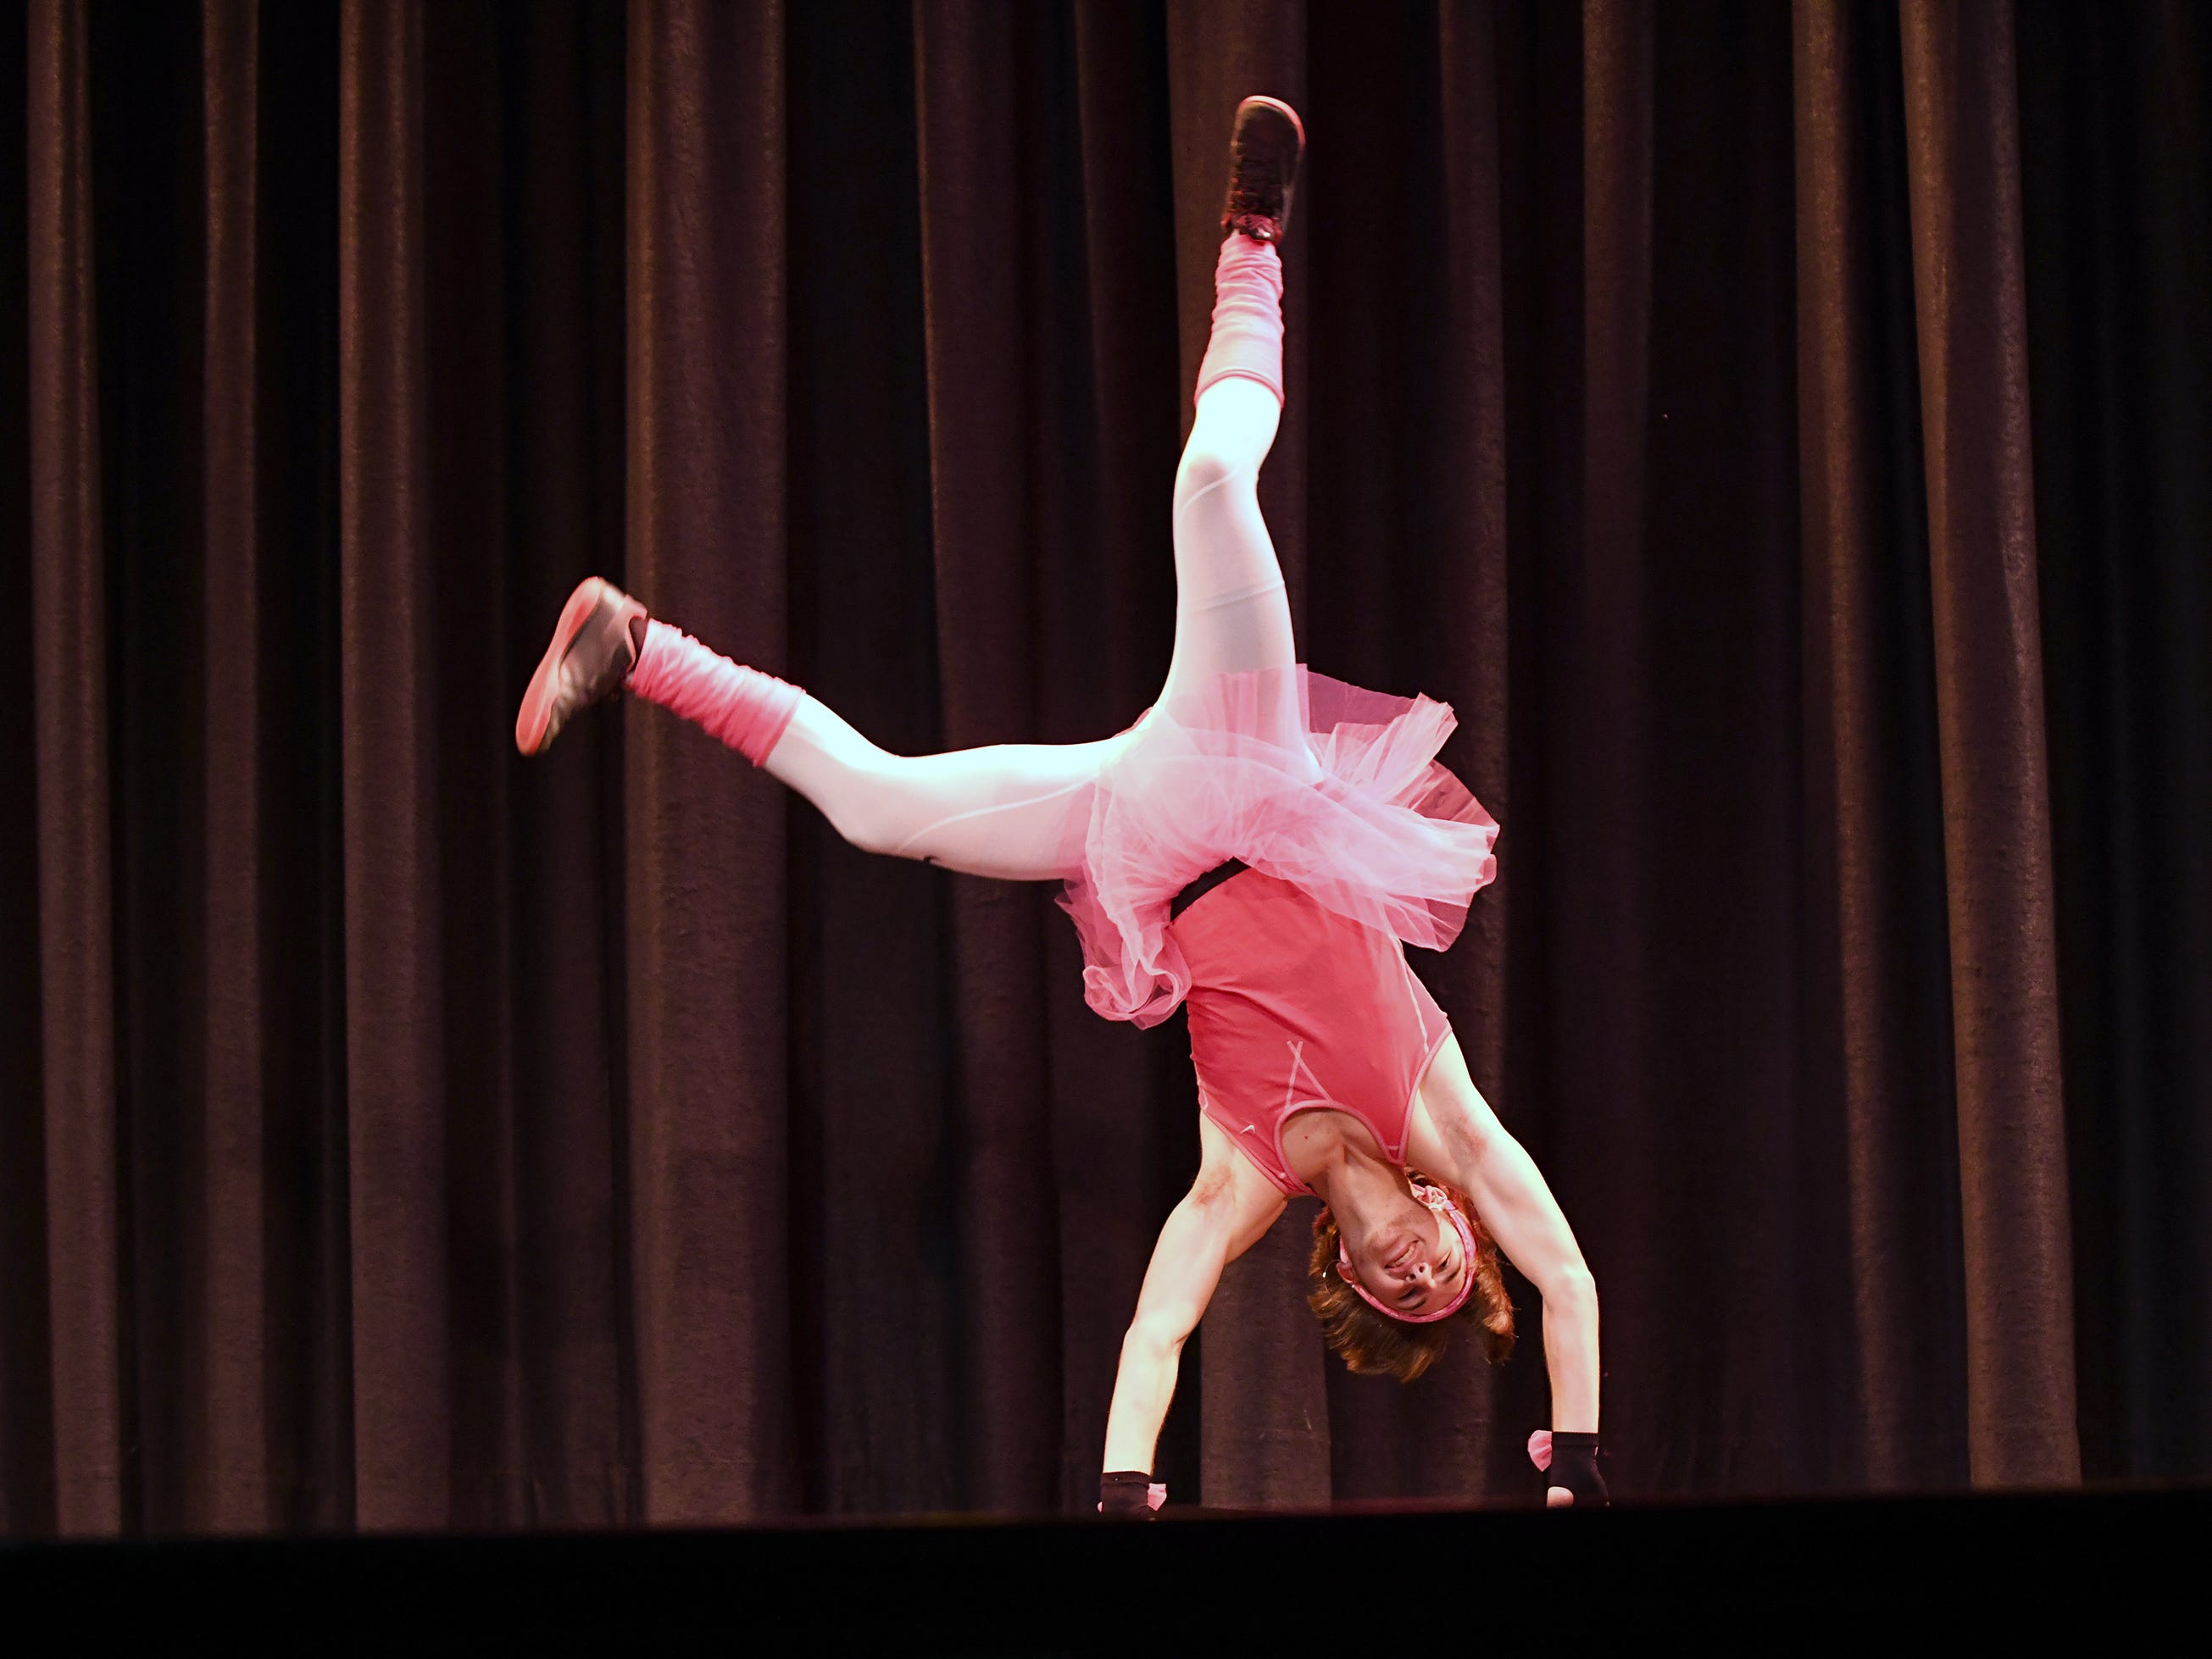 Lucas Portadin performs during the talent portion of Mr. Vineland 2019 at Vineland High School on Thursday, January 10.